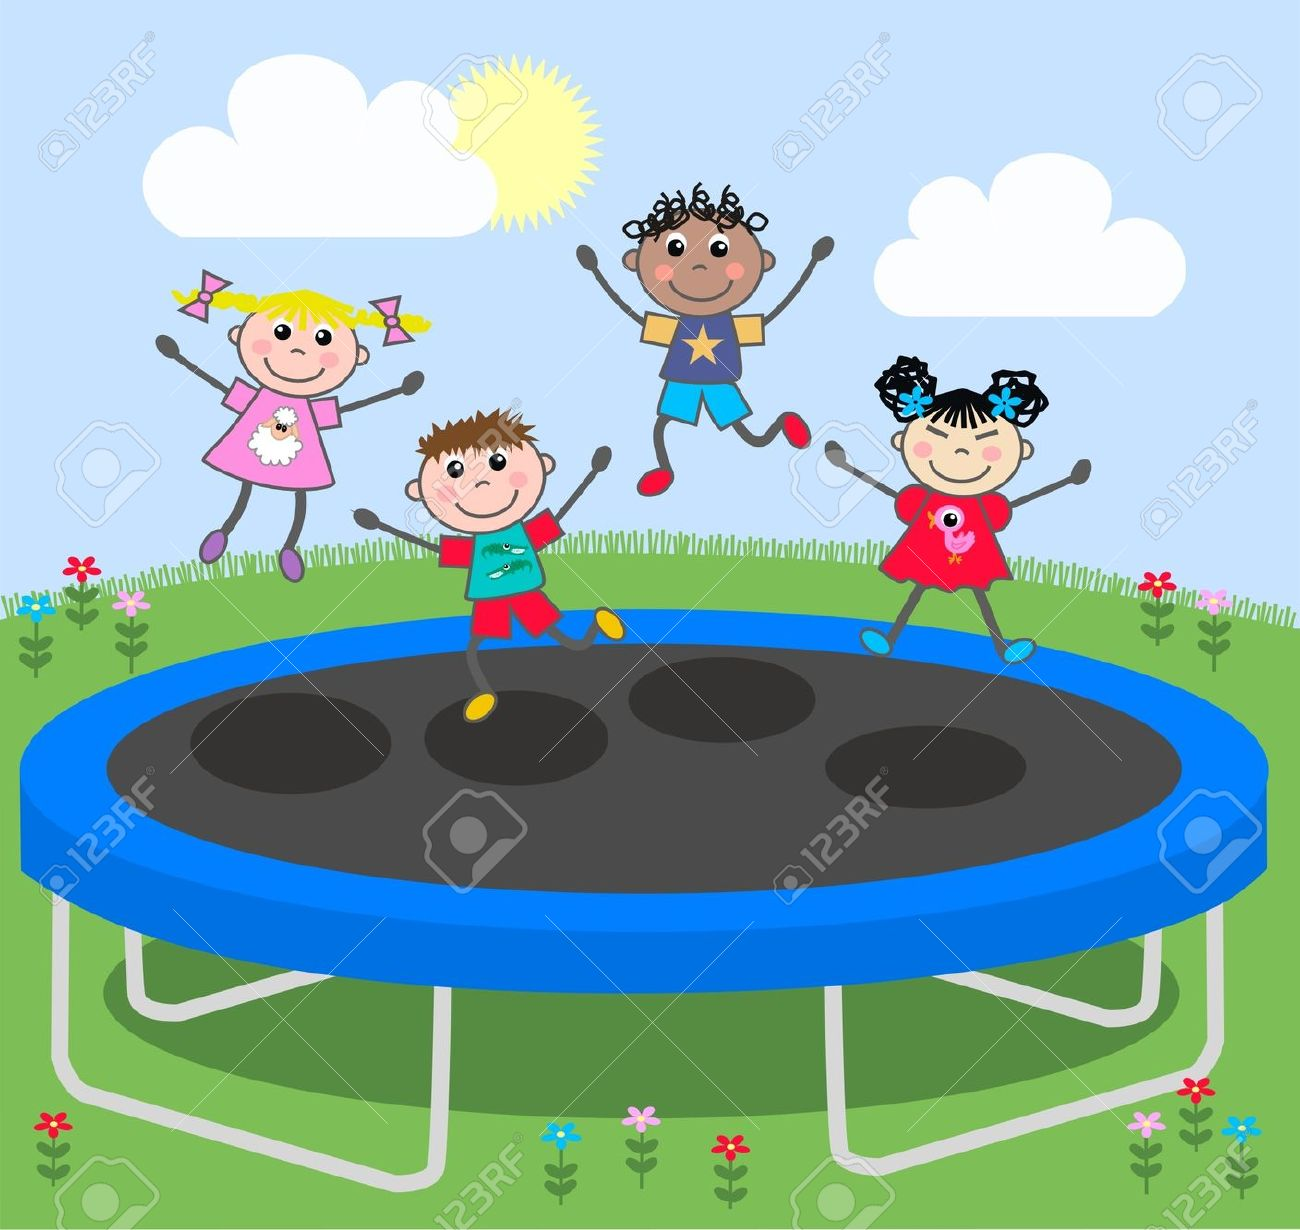 Kid Jumping On Trampoline Clipart.